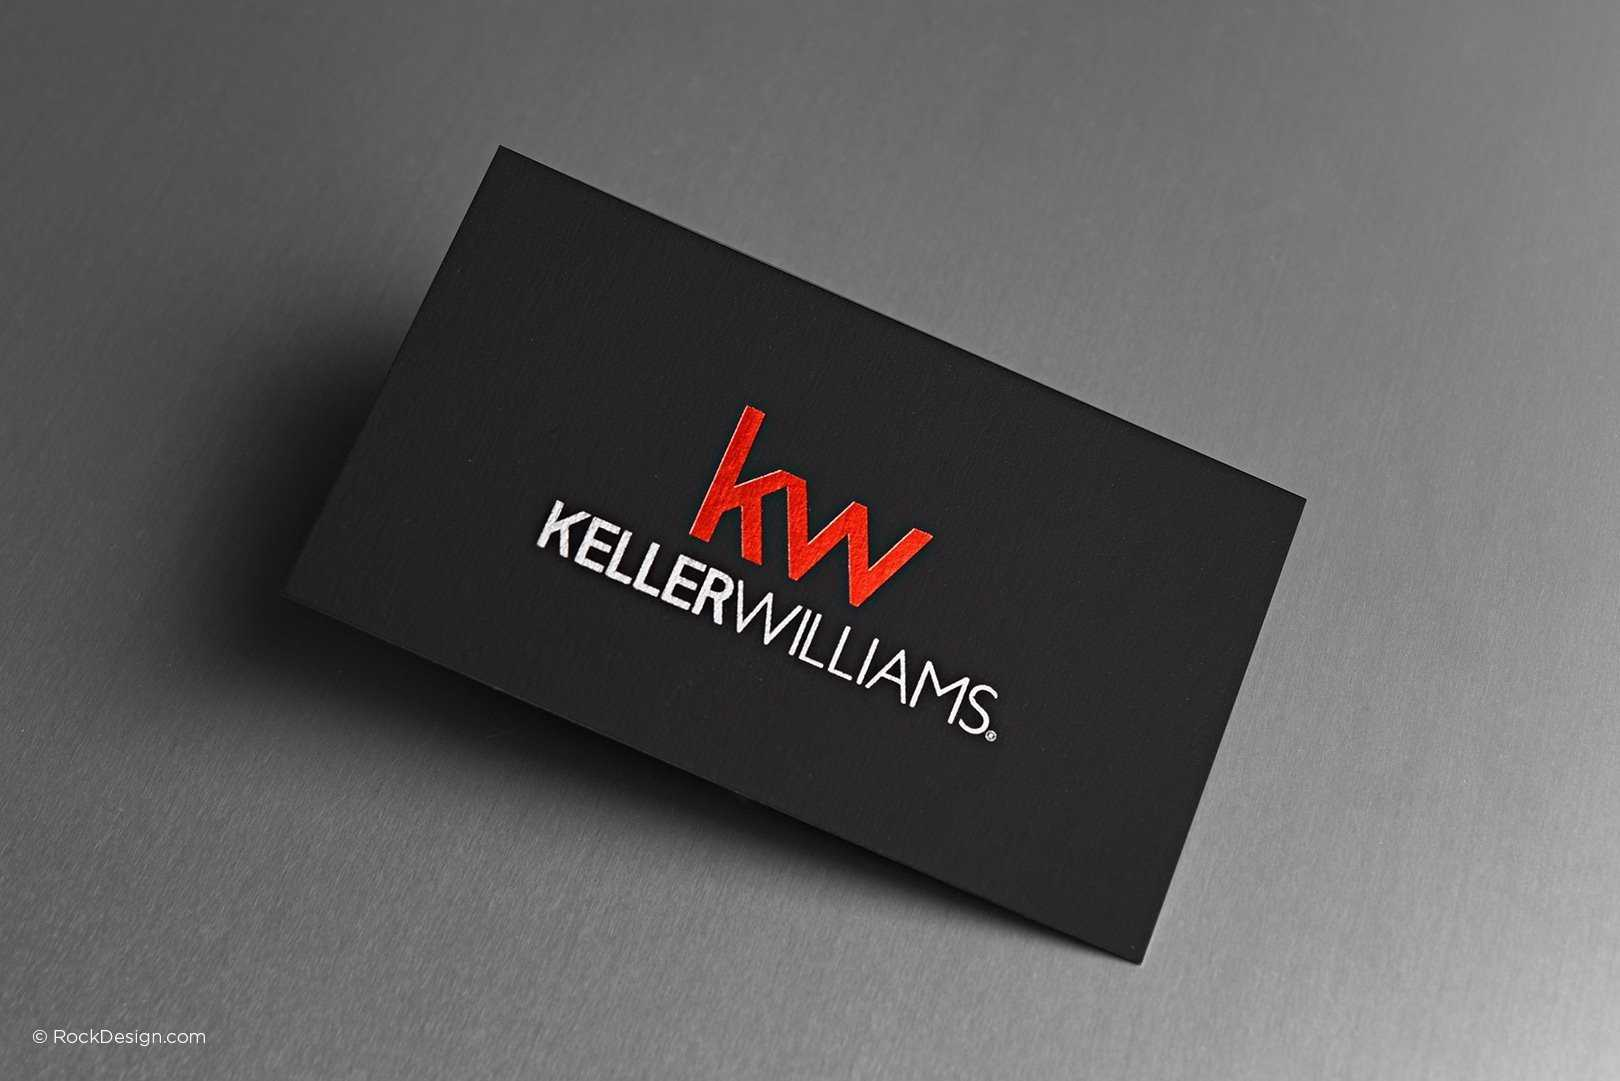 Free Keller Williams Business Card Template With Print For Keller Williams Business Card Templates